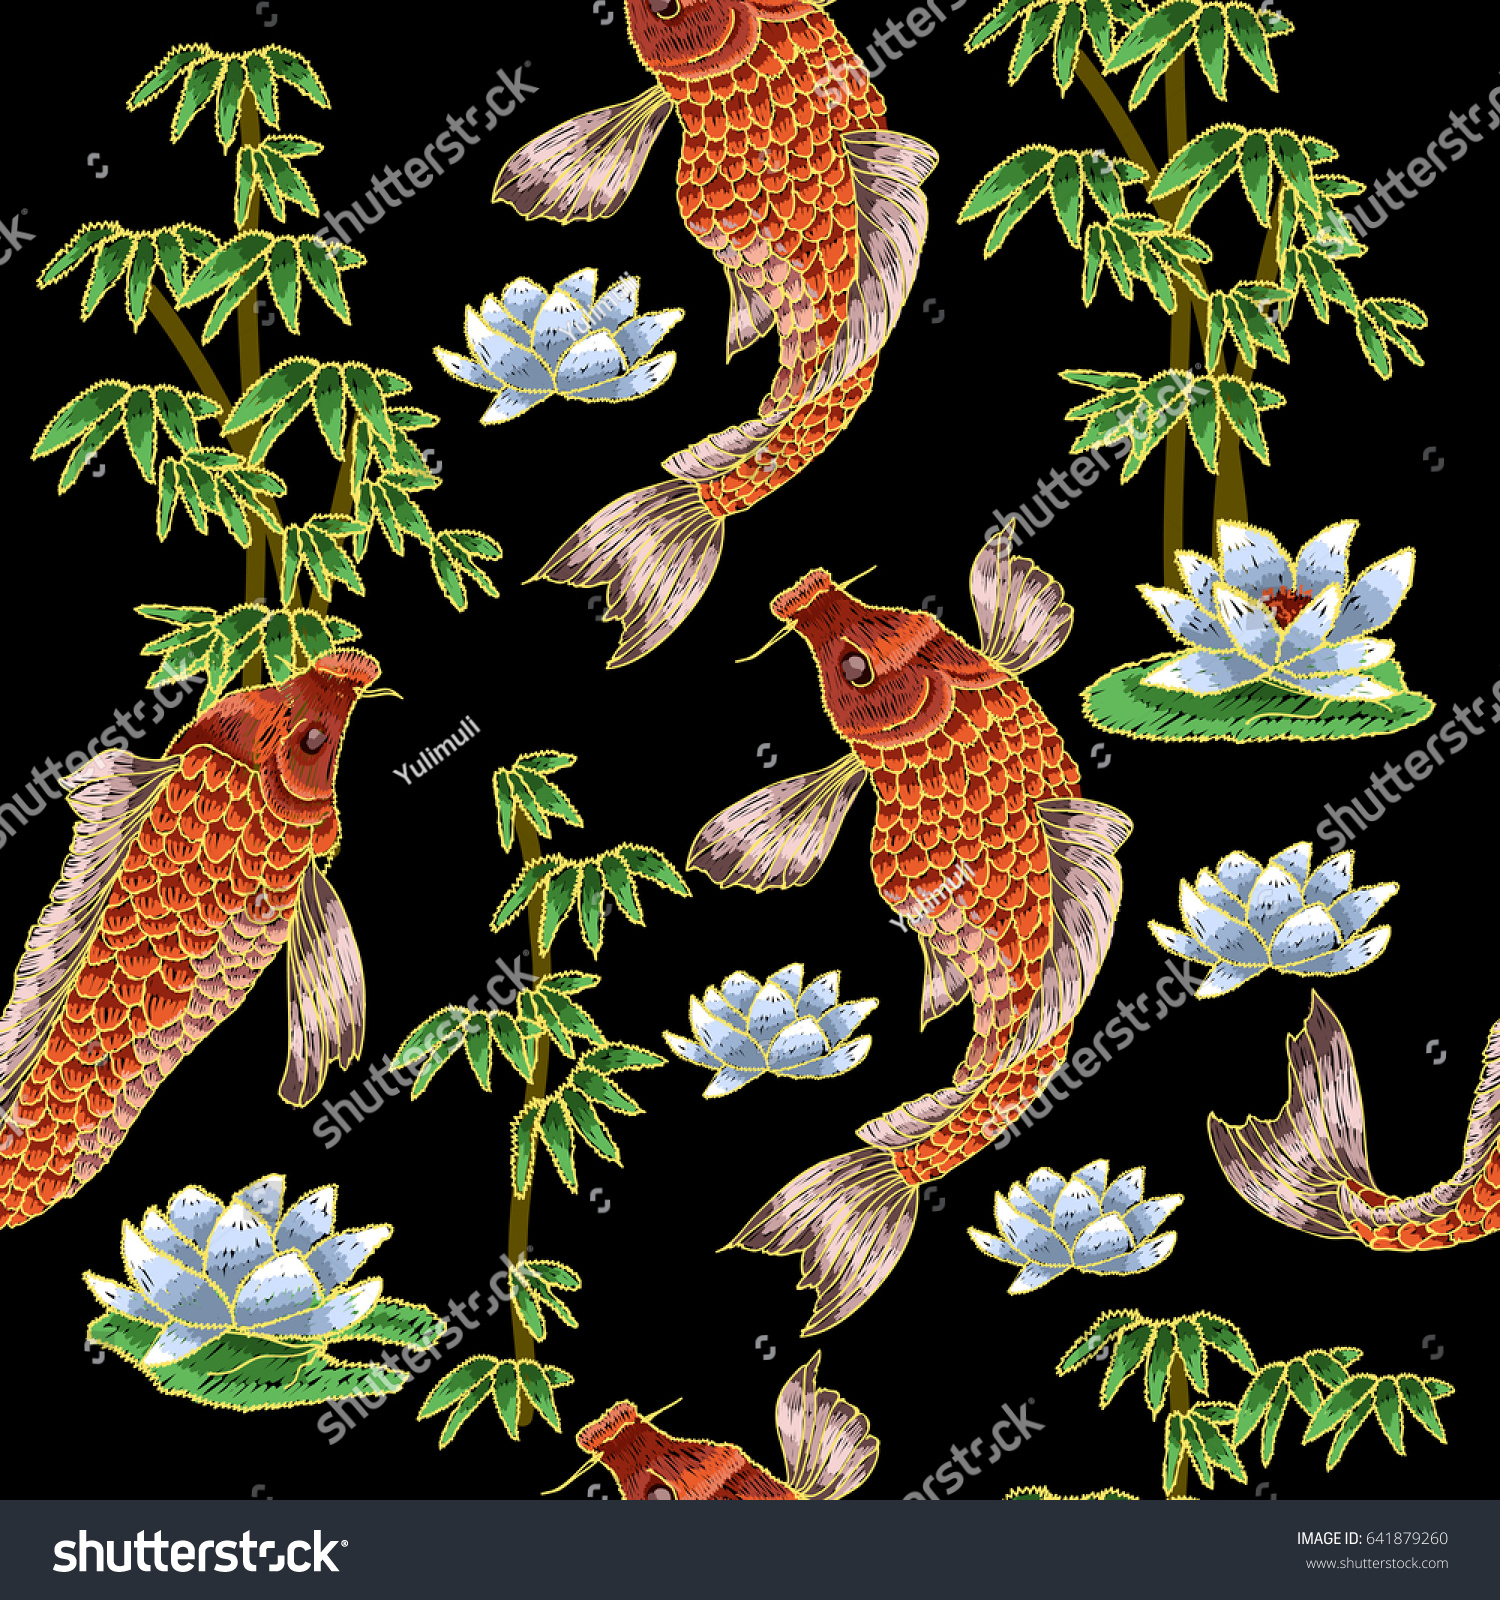 Embroidery pattern with traditional japanese carp and flowers